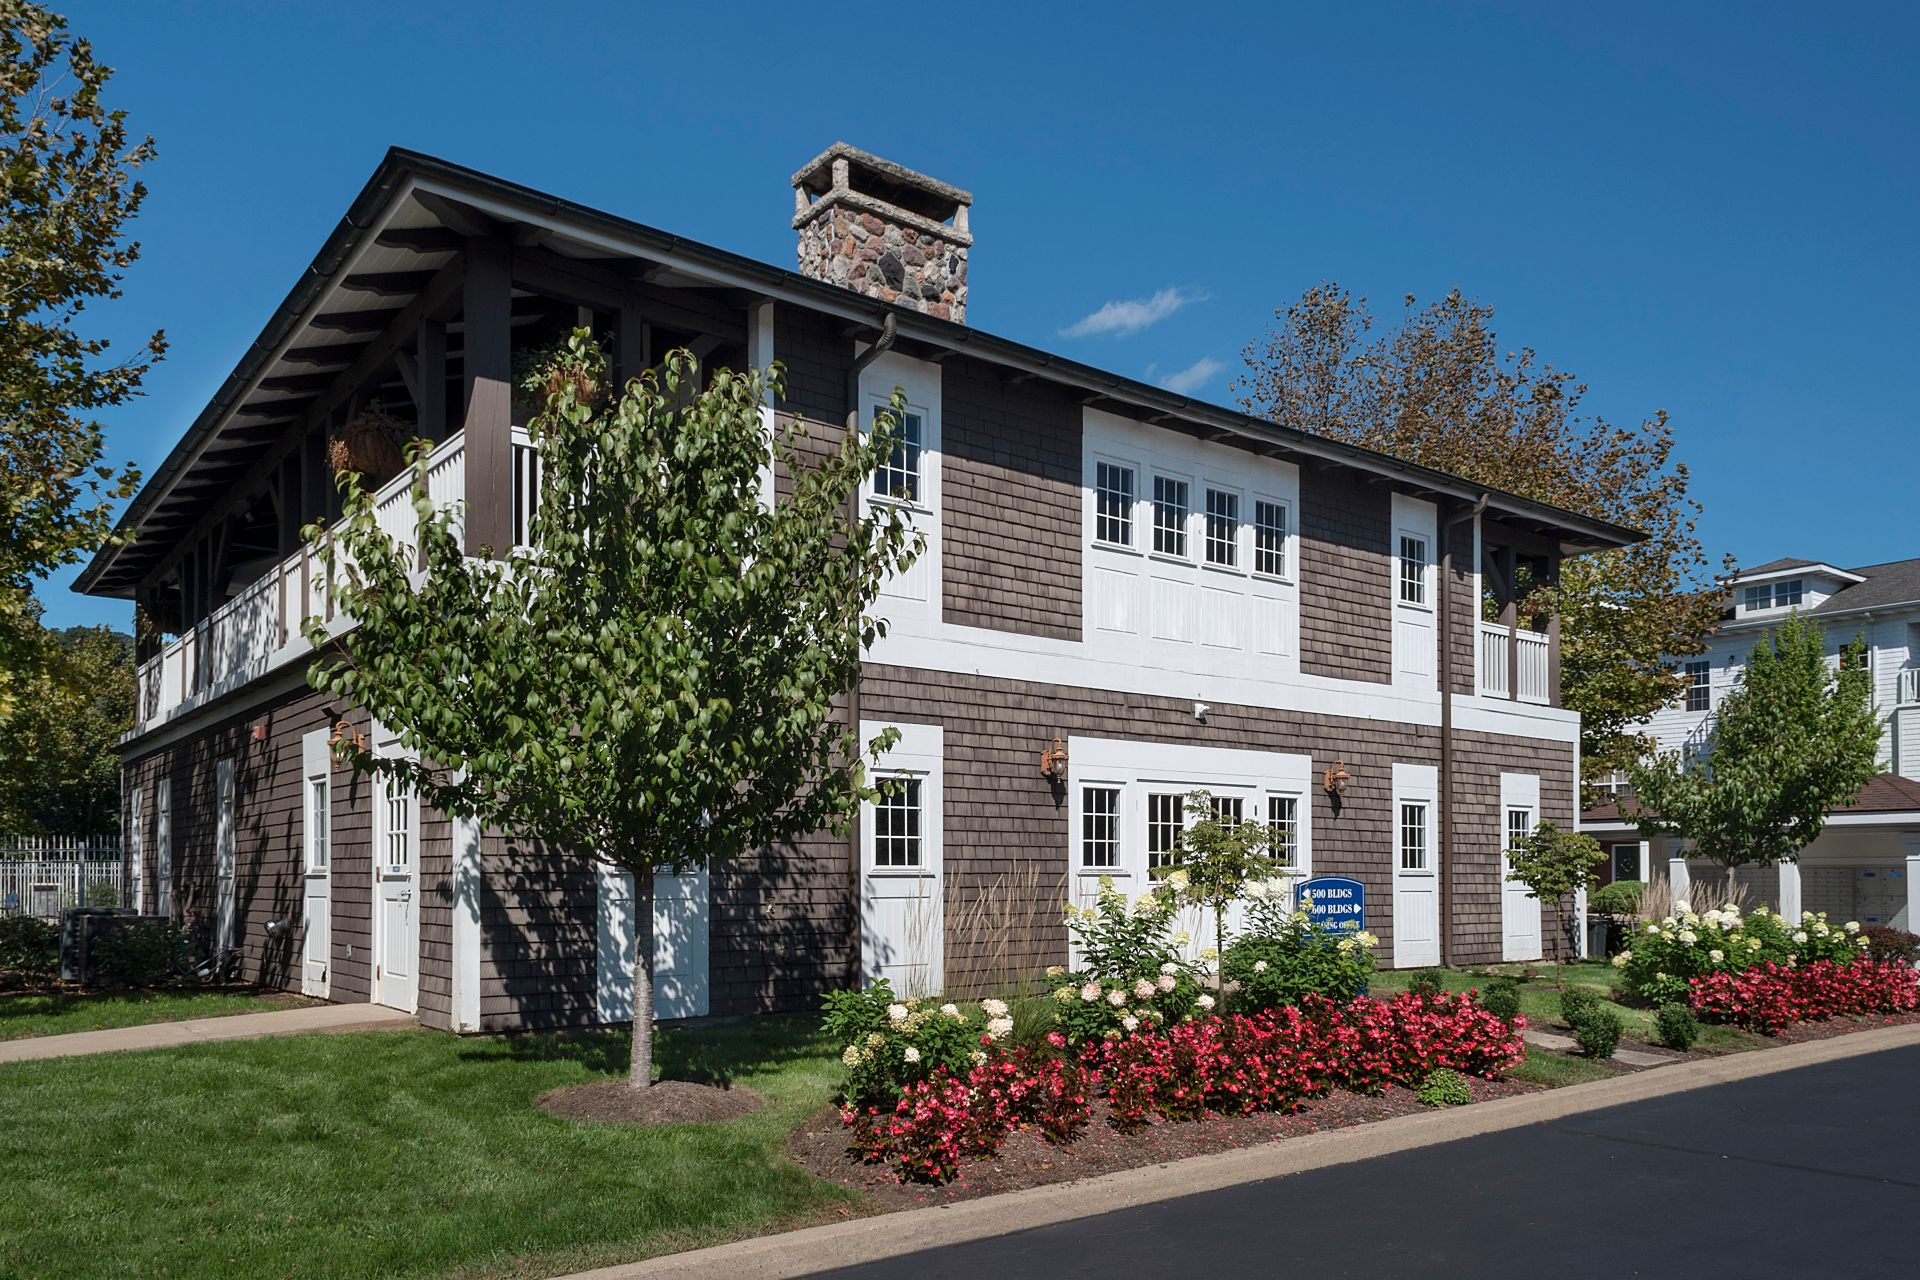 The Waterfront Apartments and Townhomes with Resident Clubhouse, Fireside Seating and Entertainment Spaces,  611 E. Waterfront Drive, Munhall, PA 15120